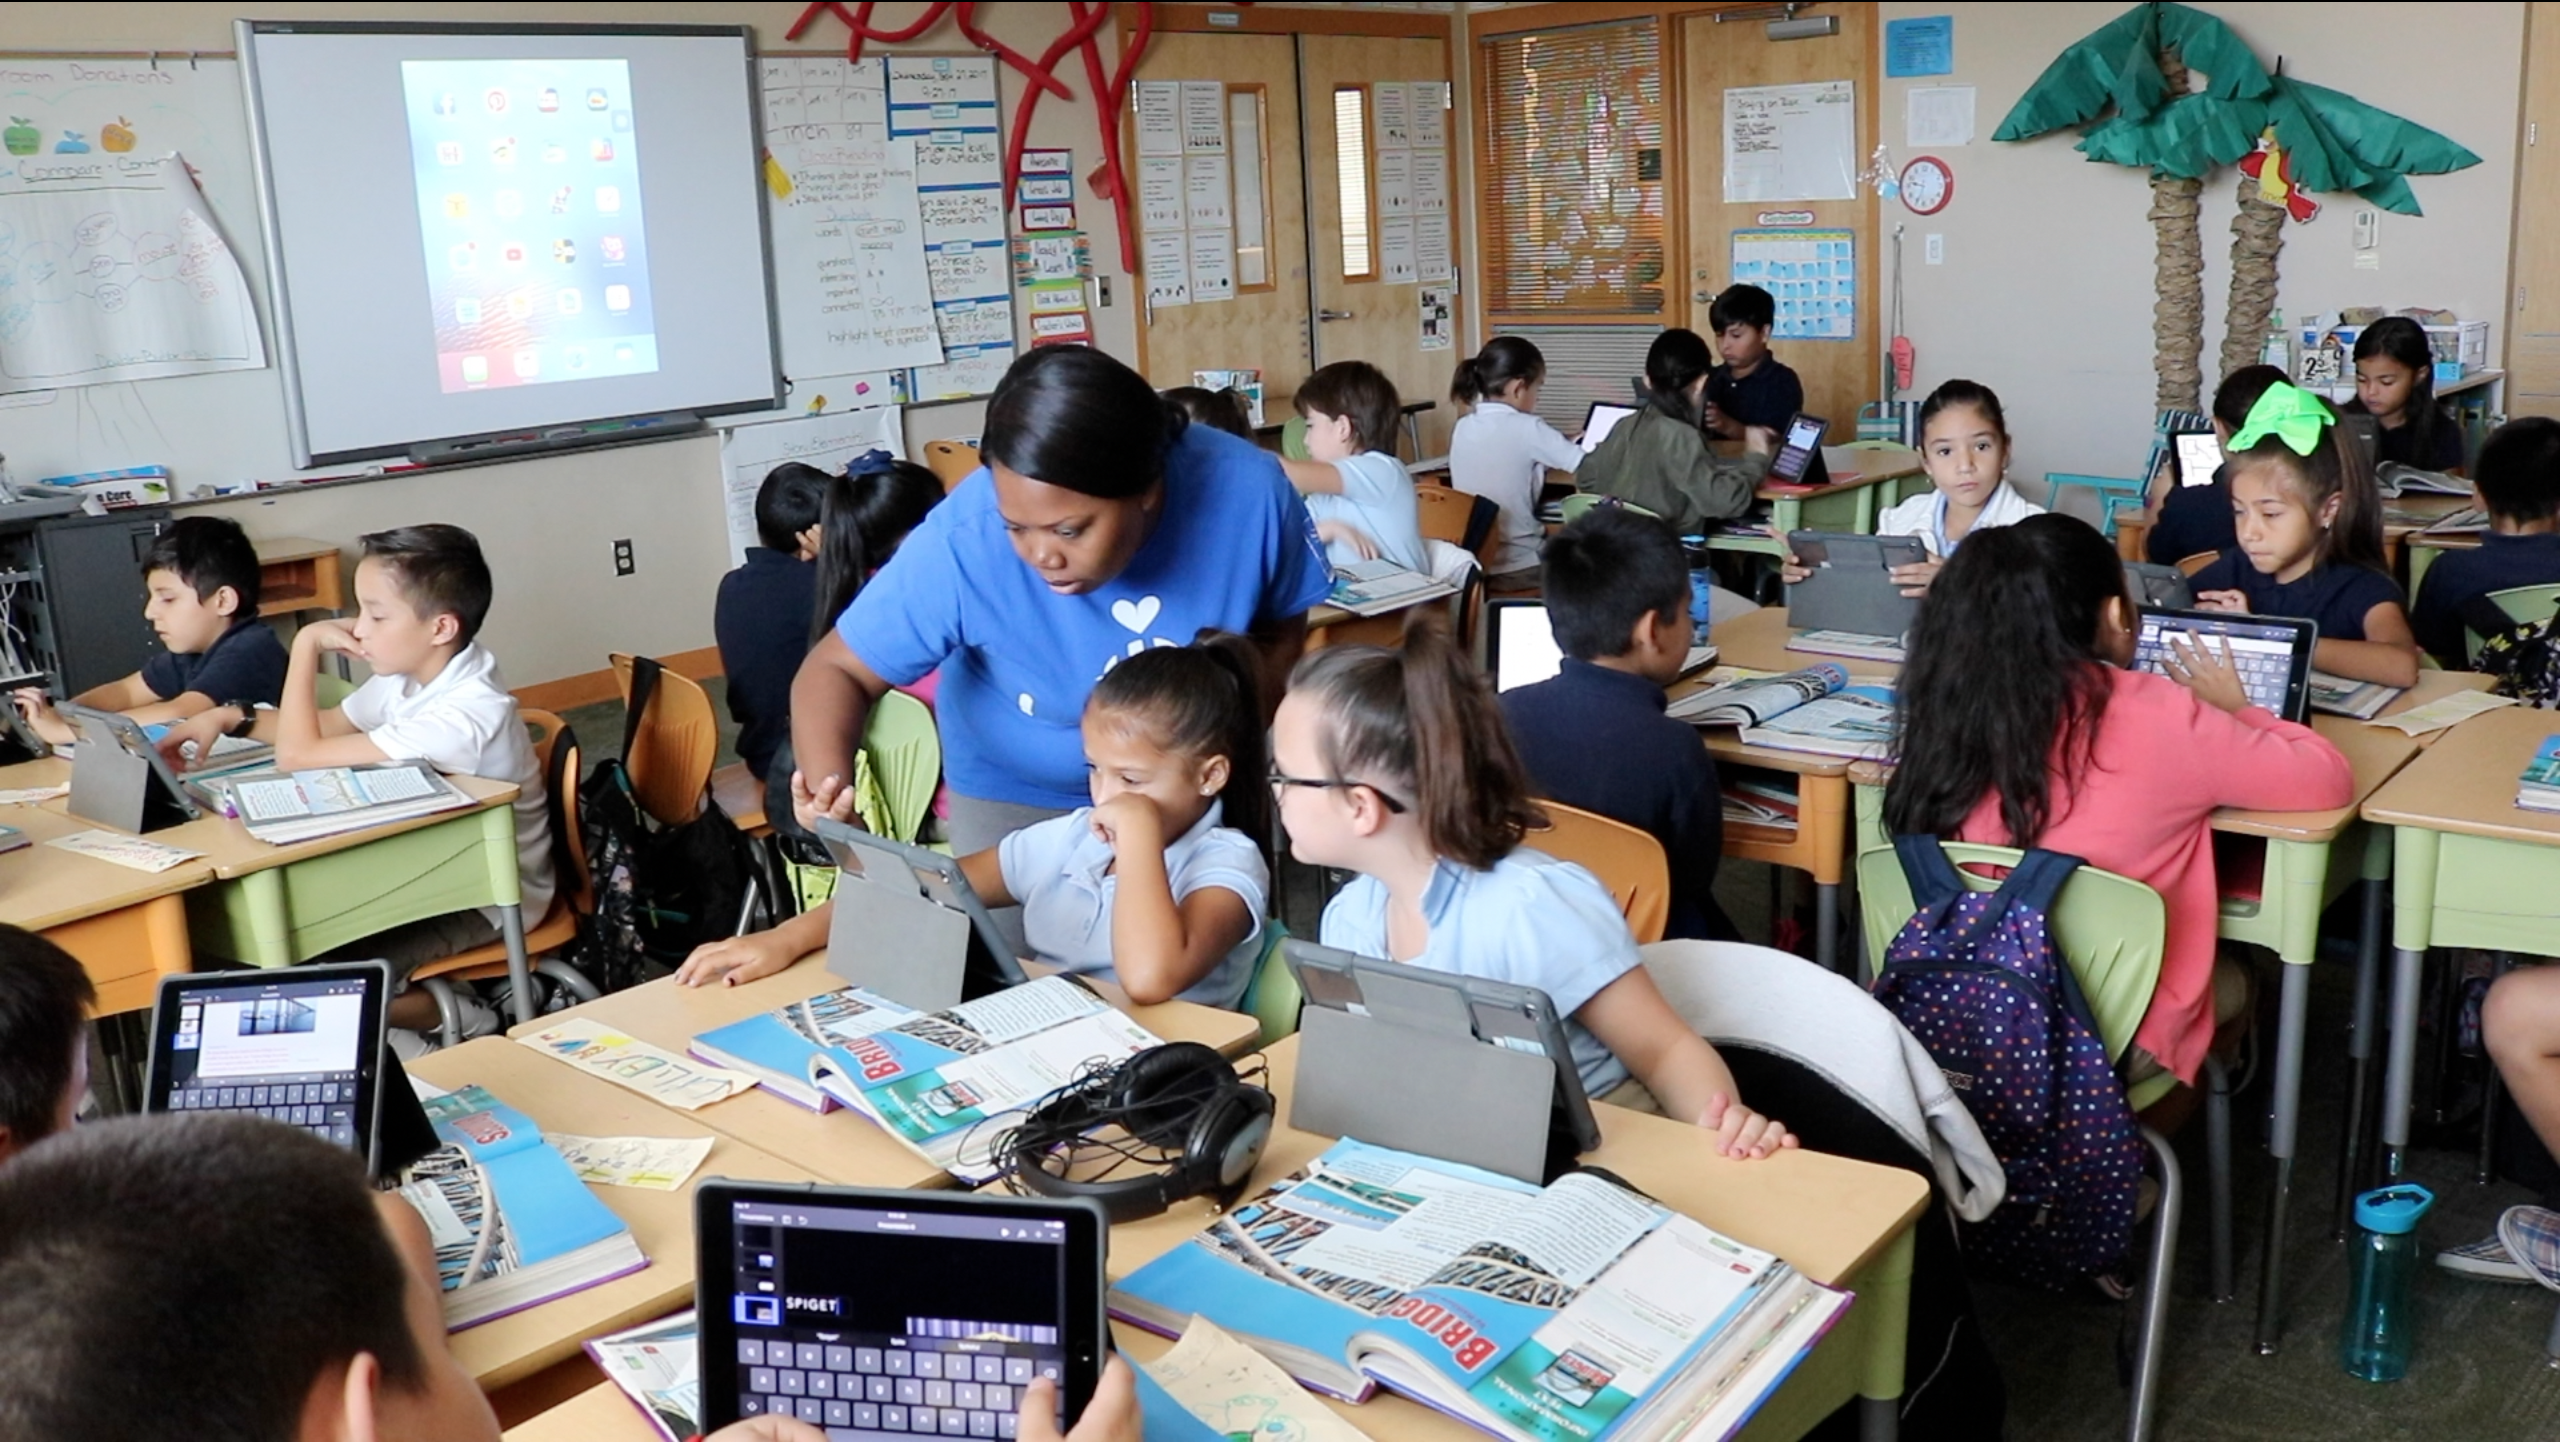 Pendergast Elementary School's Technology Michelle Longmire Helps Students In Lisa Slover's Third Grade Class. Photo By Lauren Negrete/AZEdNews